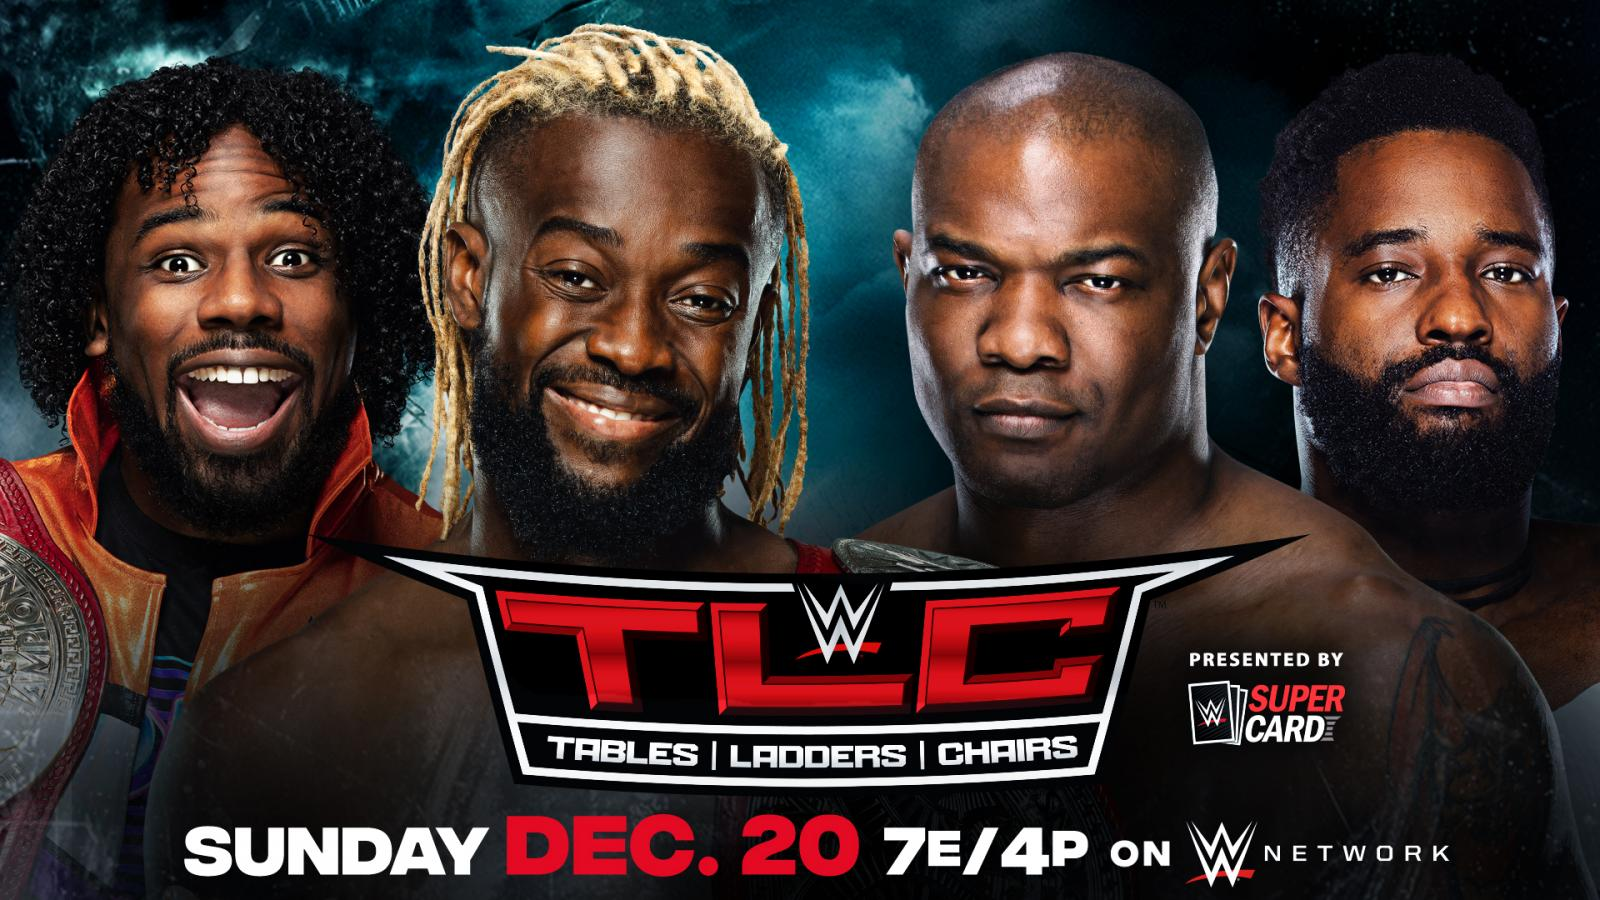 The New Day vs The Hurt Business WWE TLC 2020 Official Graphic